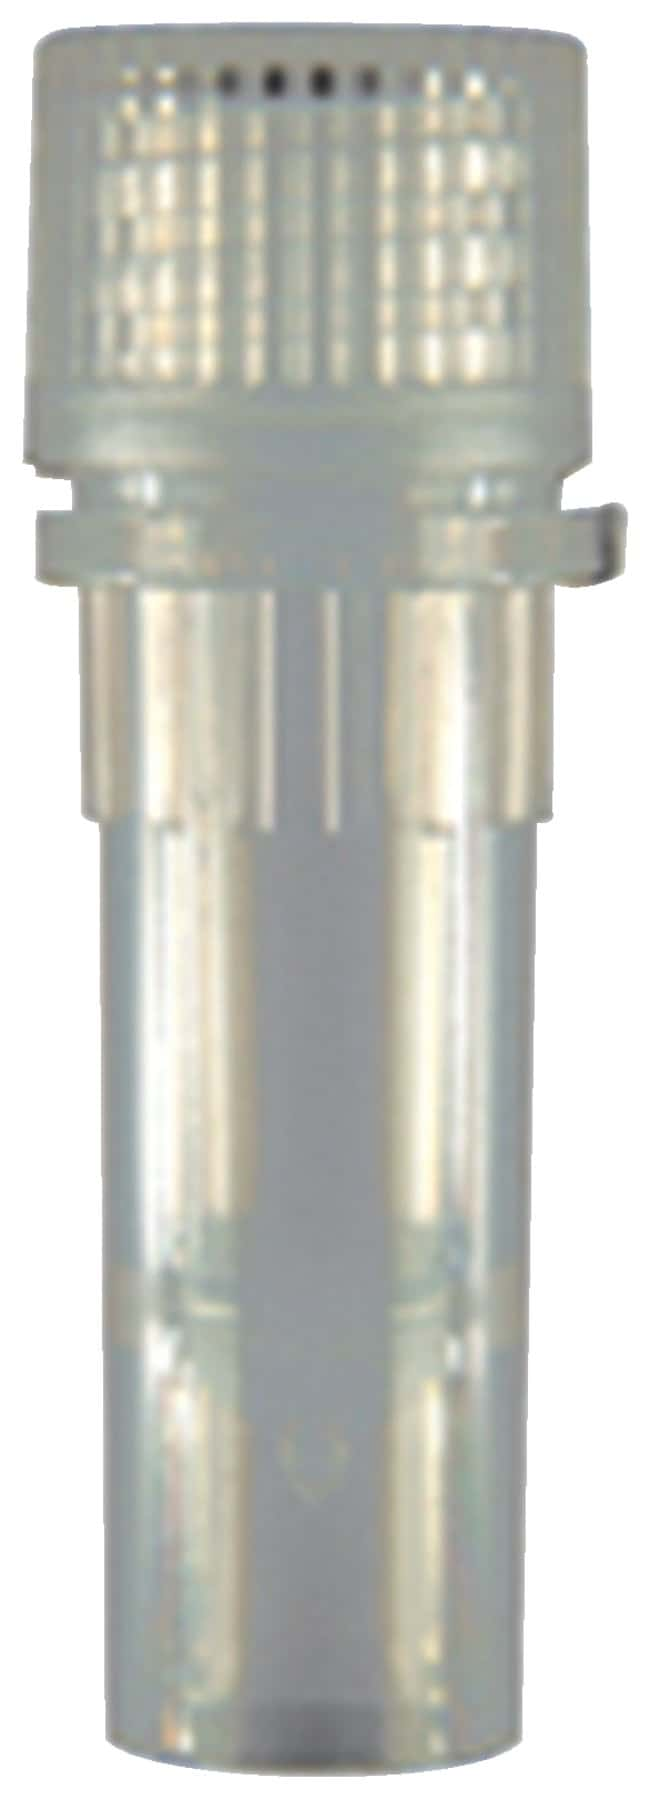 Axygen™ 0.5 mL Self Standing Screw Cap Tubes